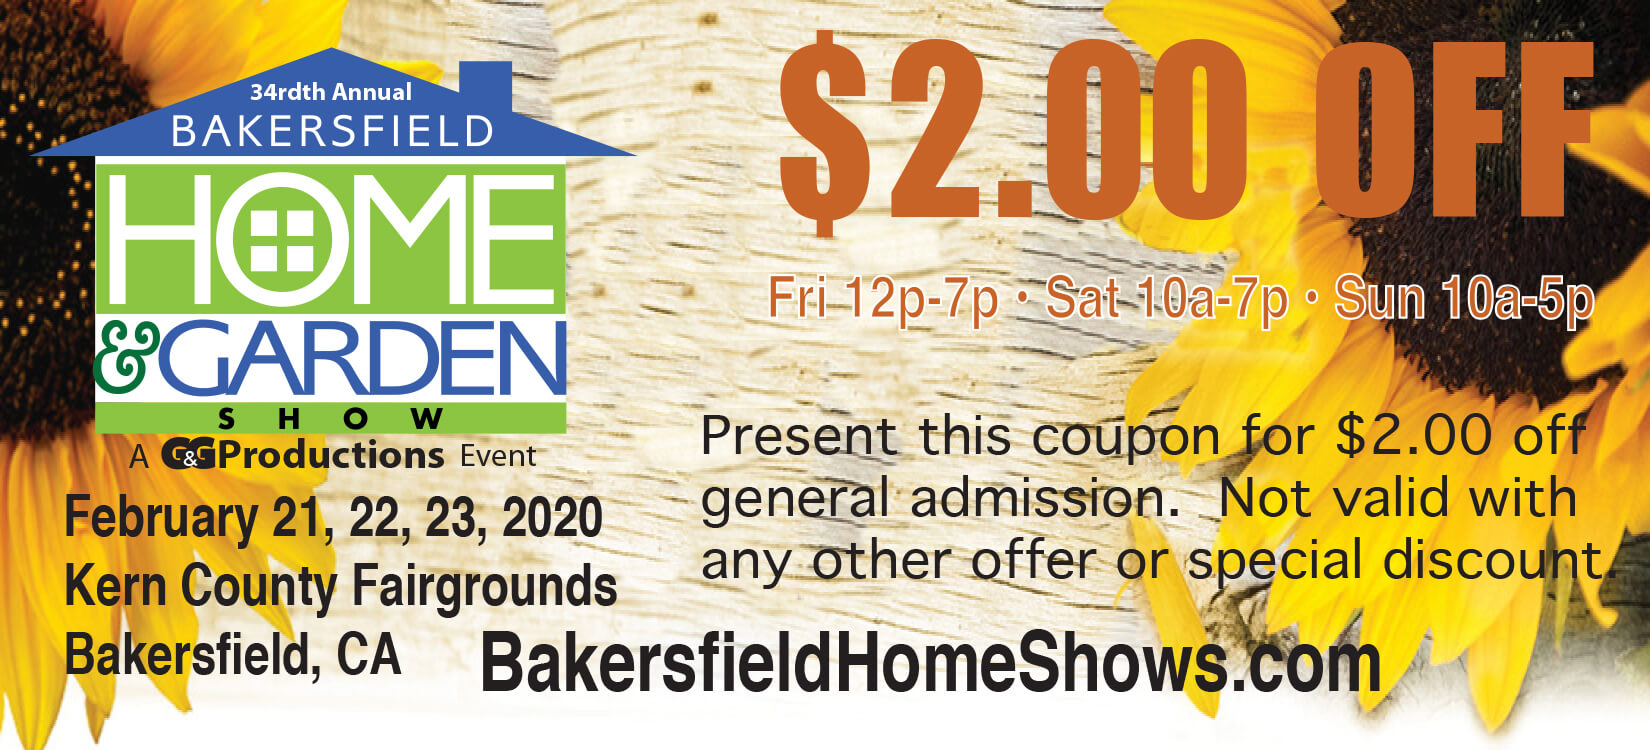 2020 Bakersfield Home Show discount coupon